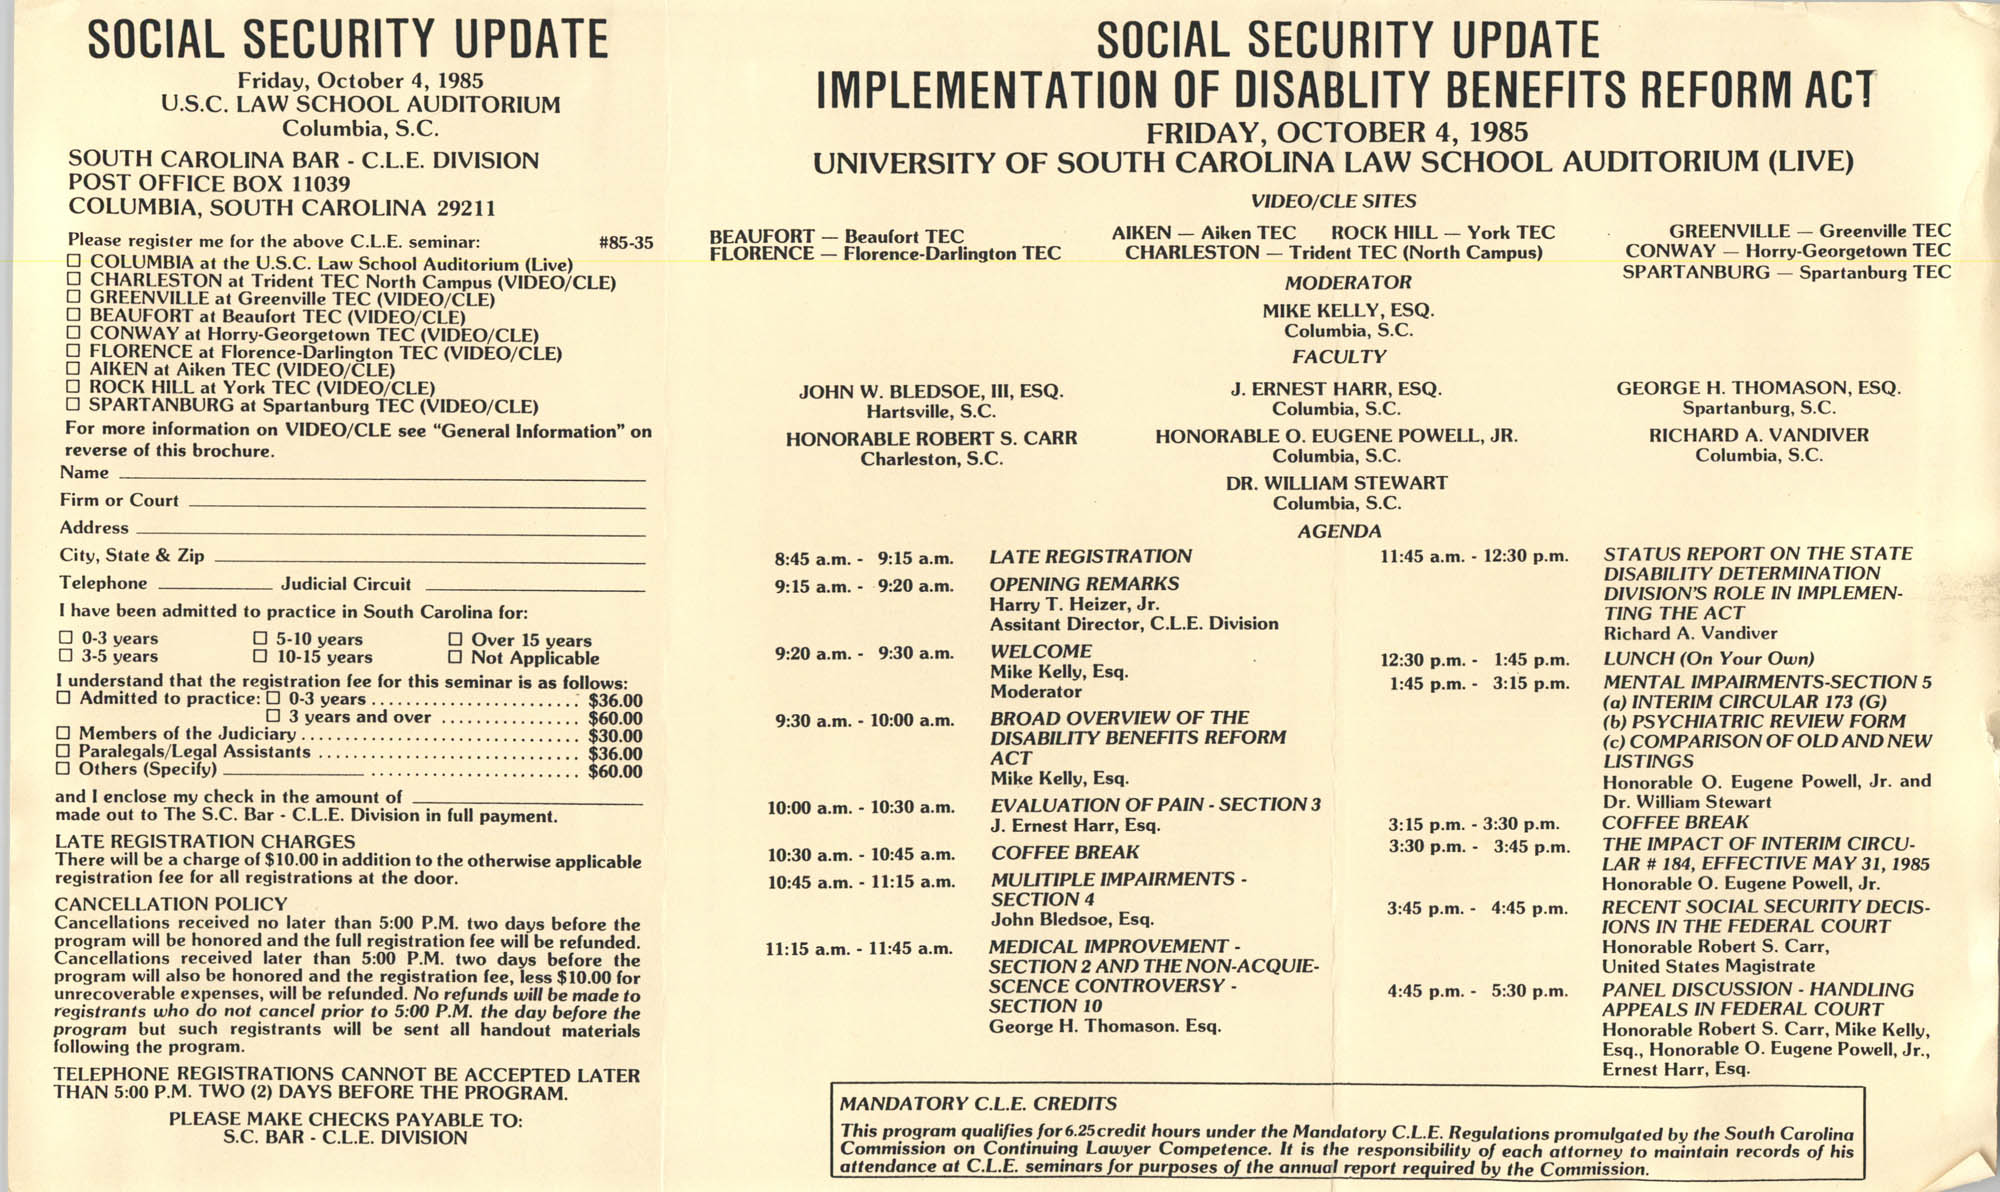 Social Security Update Implementation of Disability Benefits Reform Act, Video/CLE Seminar Pamphlet, October 4, 1985